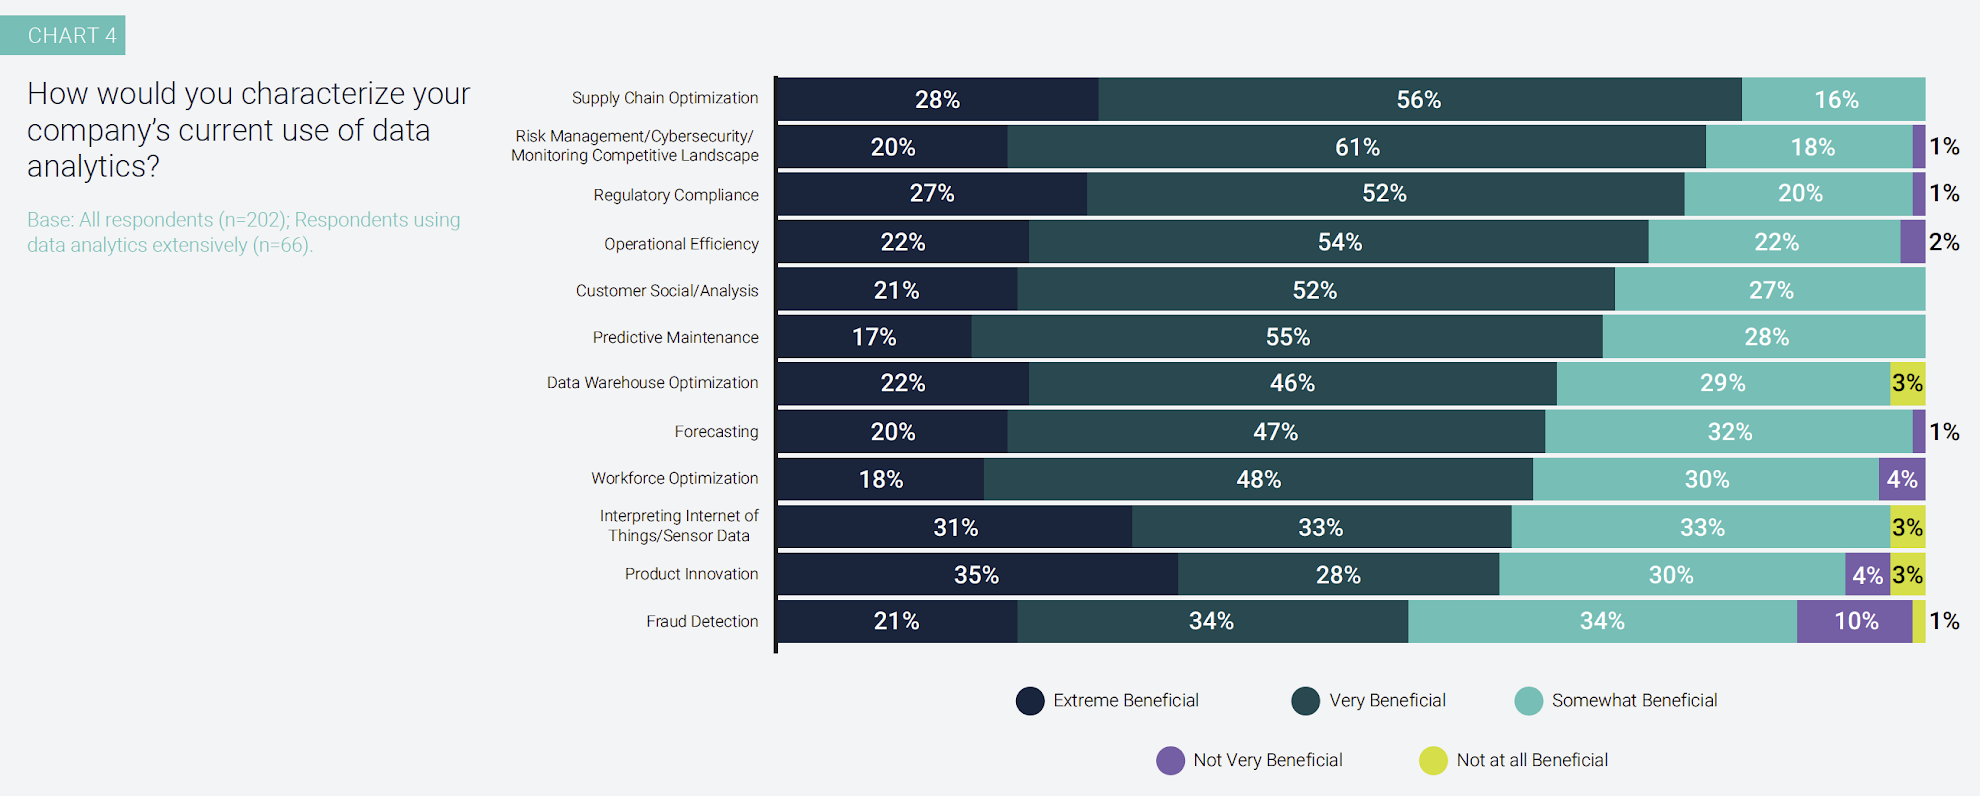 Chart 4: How would you characterize your company's current use of data analytics? Base: All respondents (n=202); Respondents using data analytics extensively (n=66).